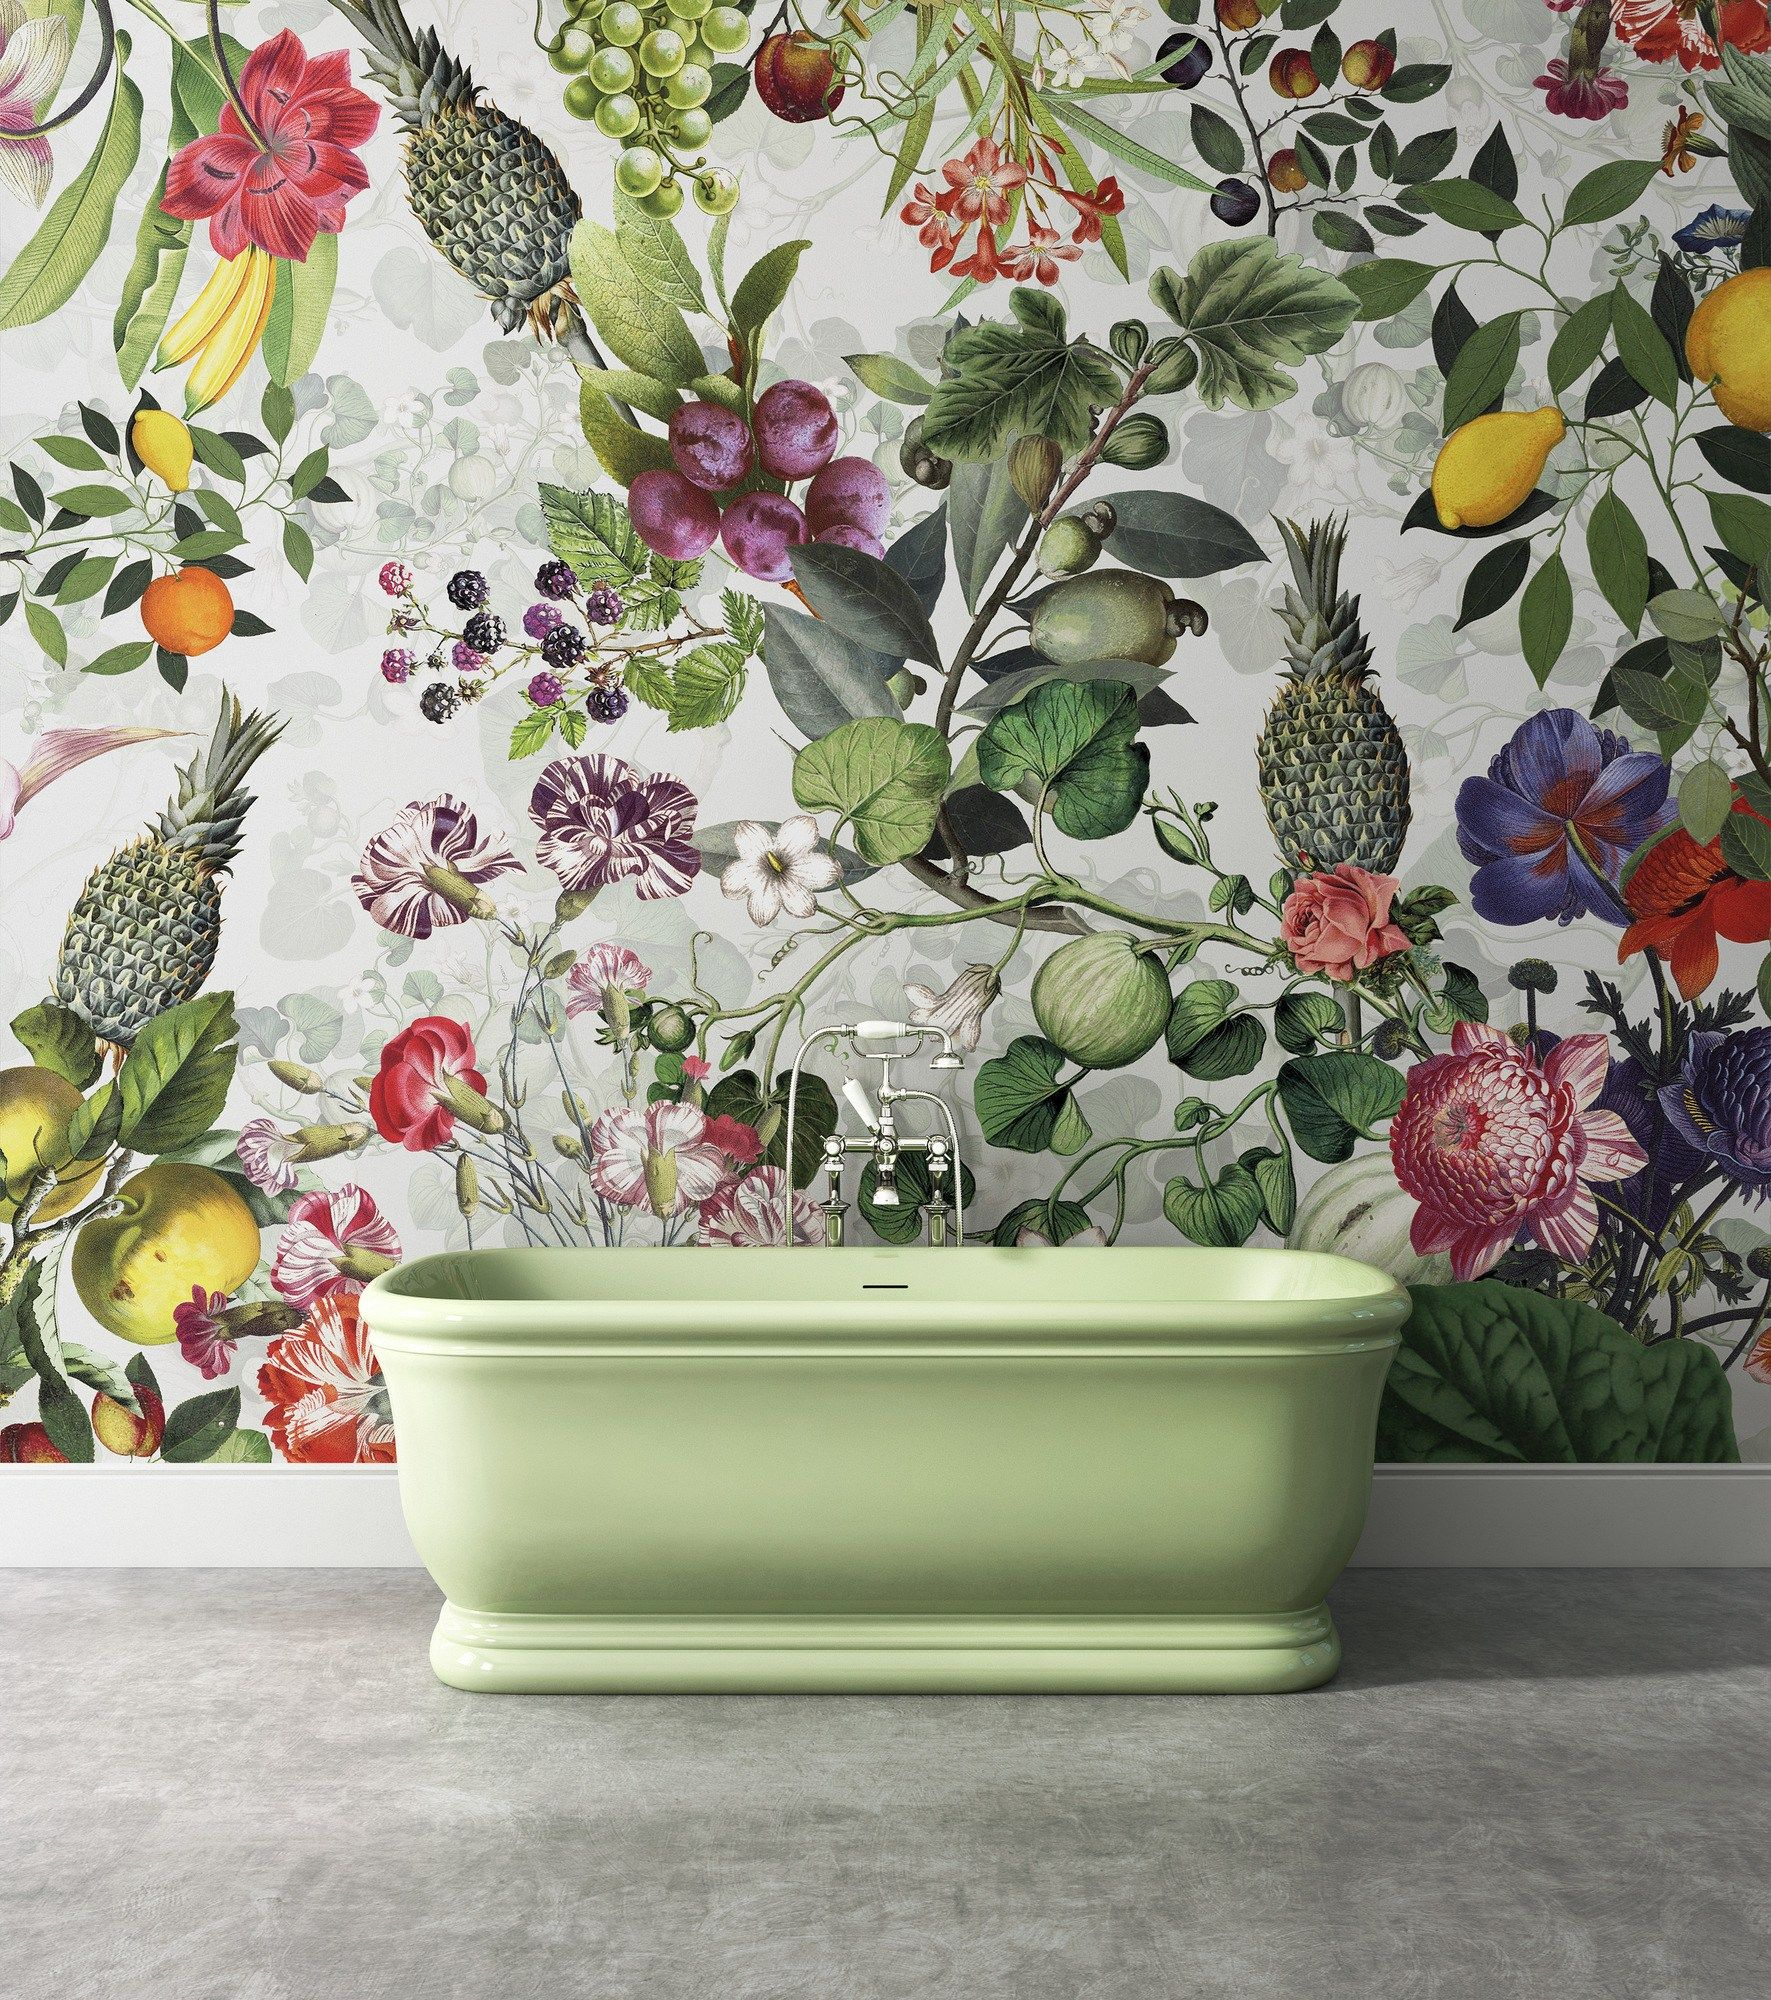 Washable Wallpaper With Floral Pattern Botanica